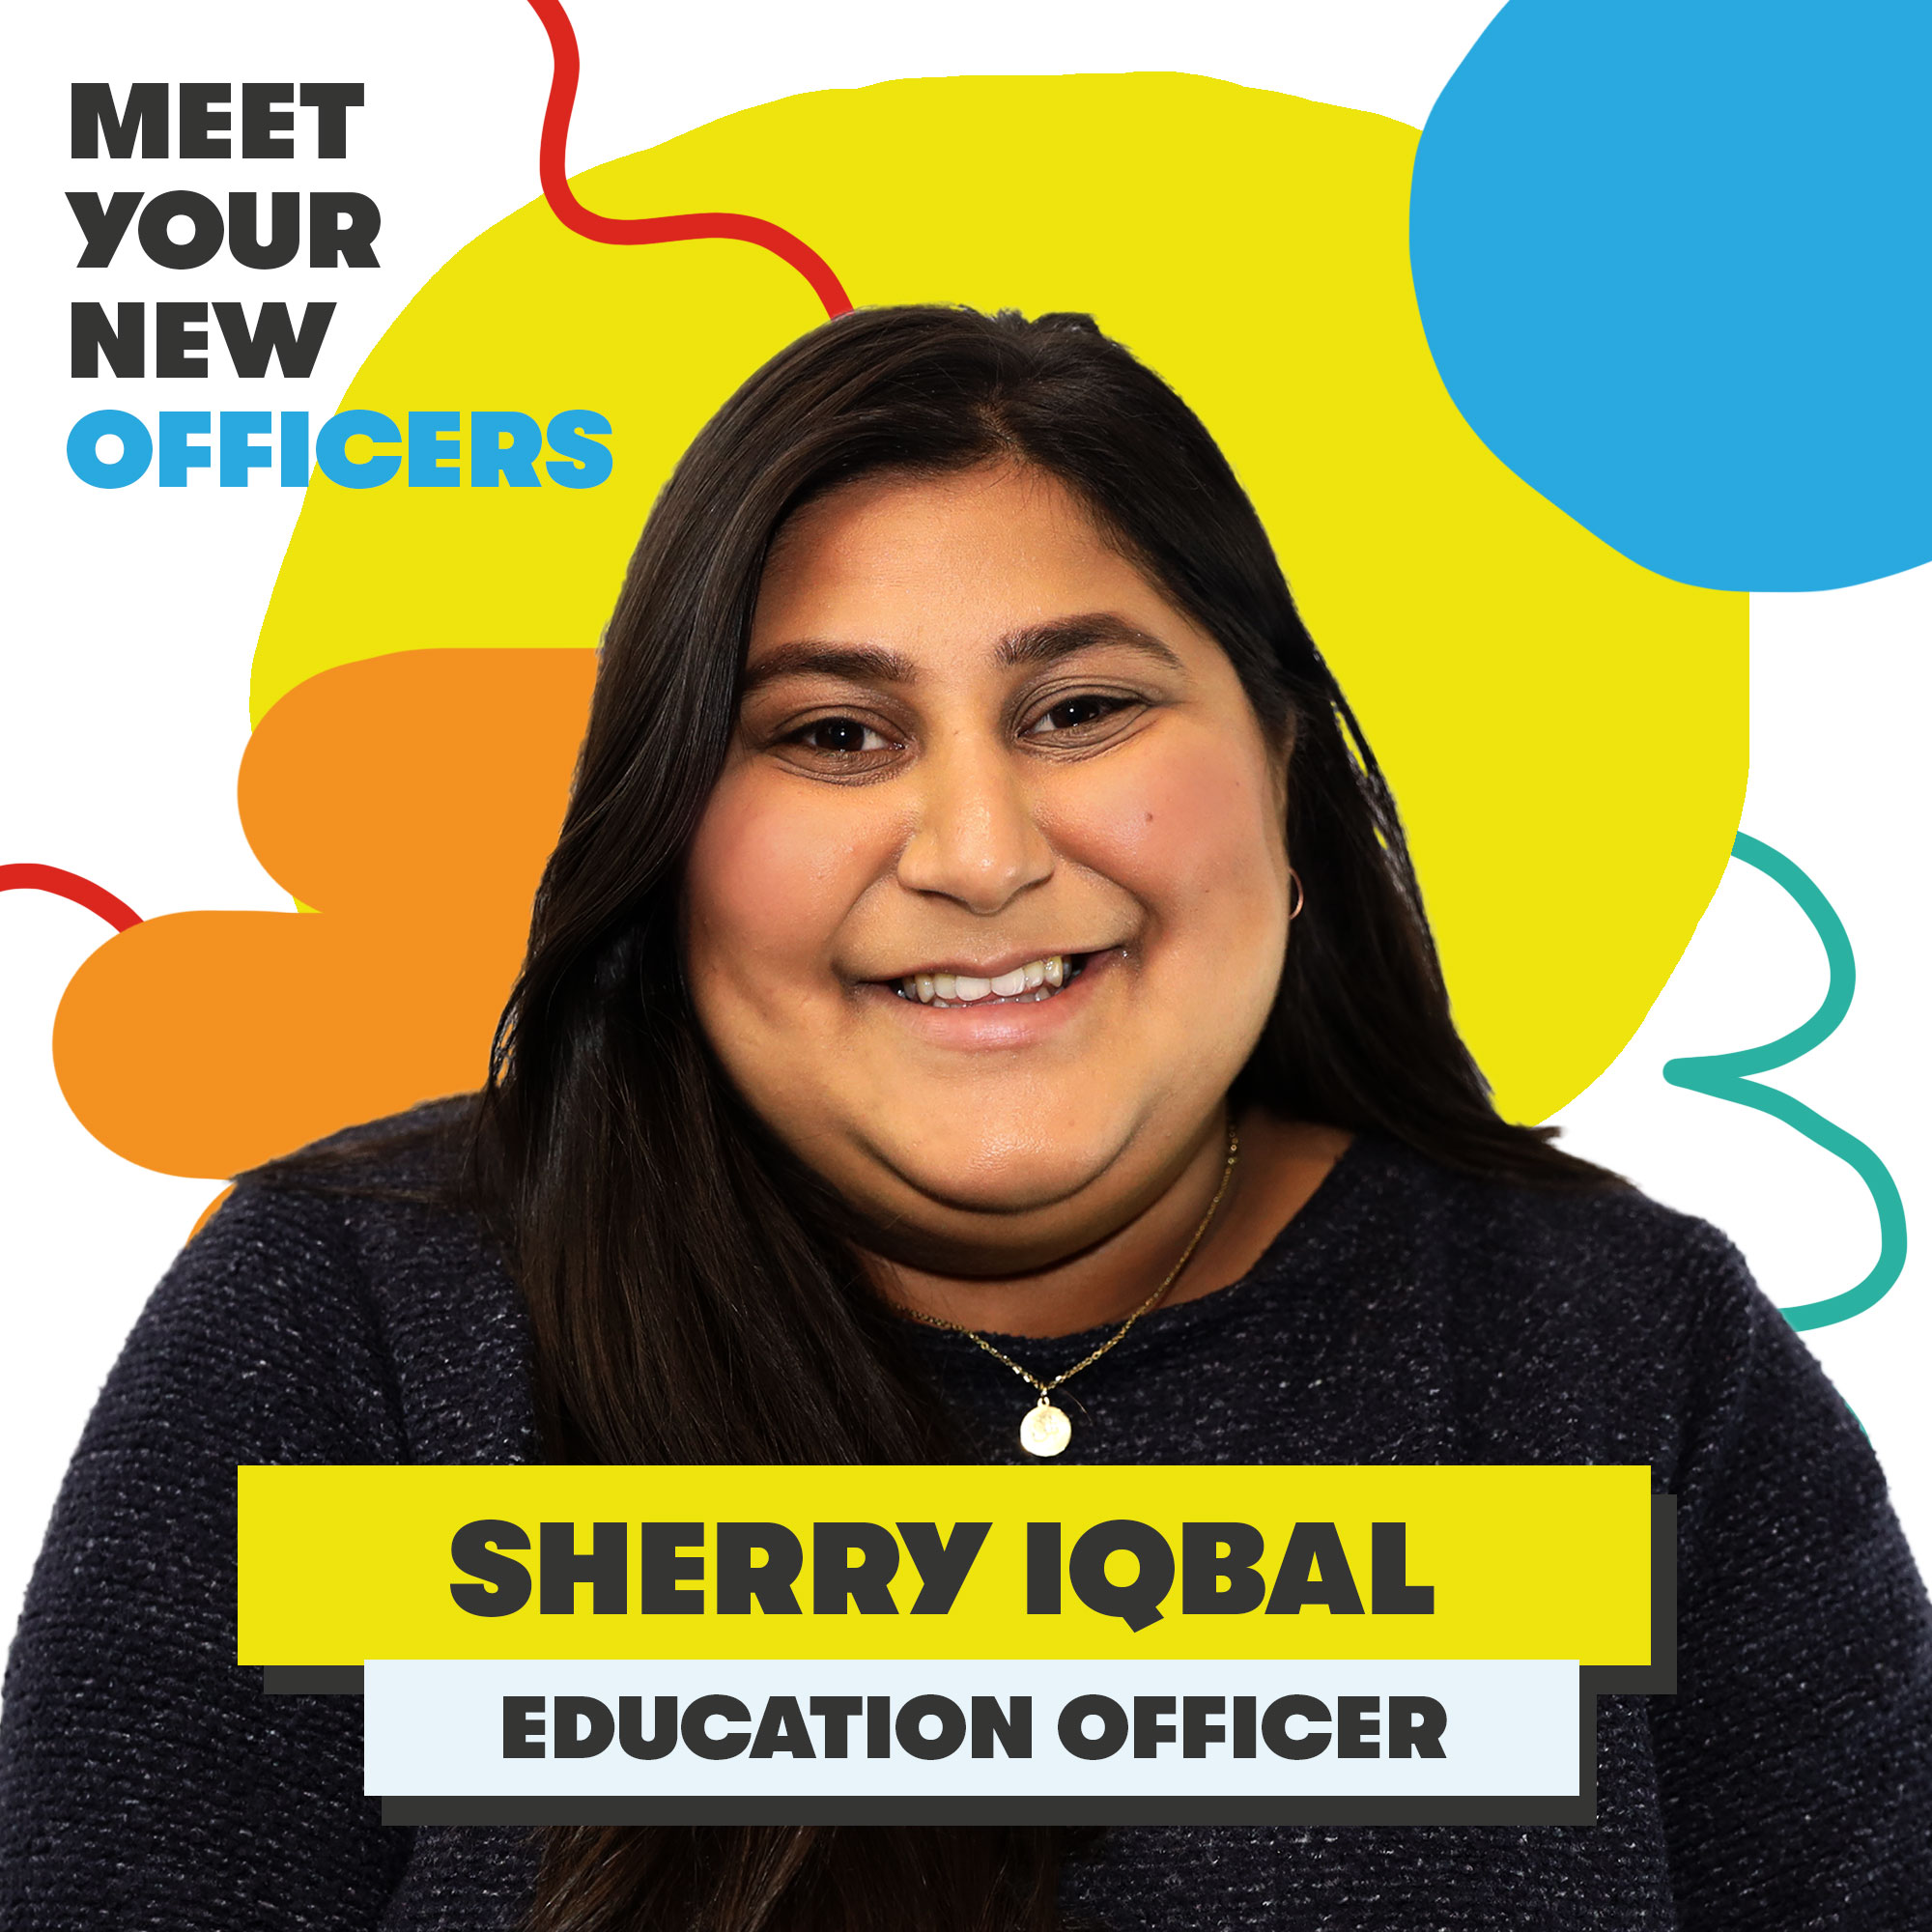 Sherry Iqbal